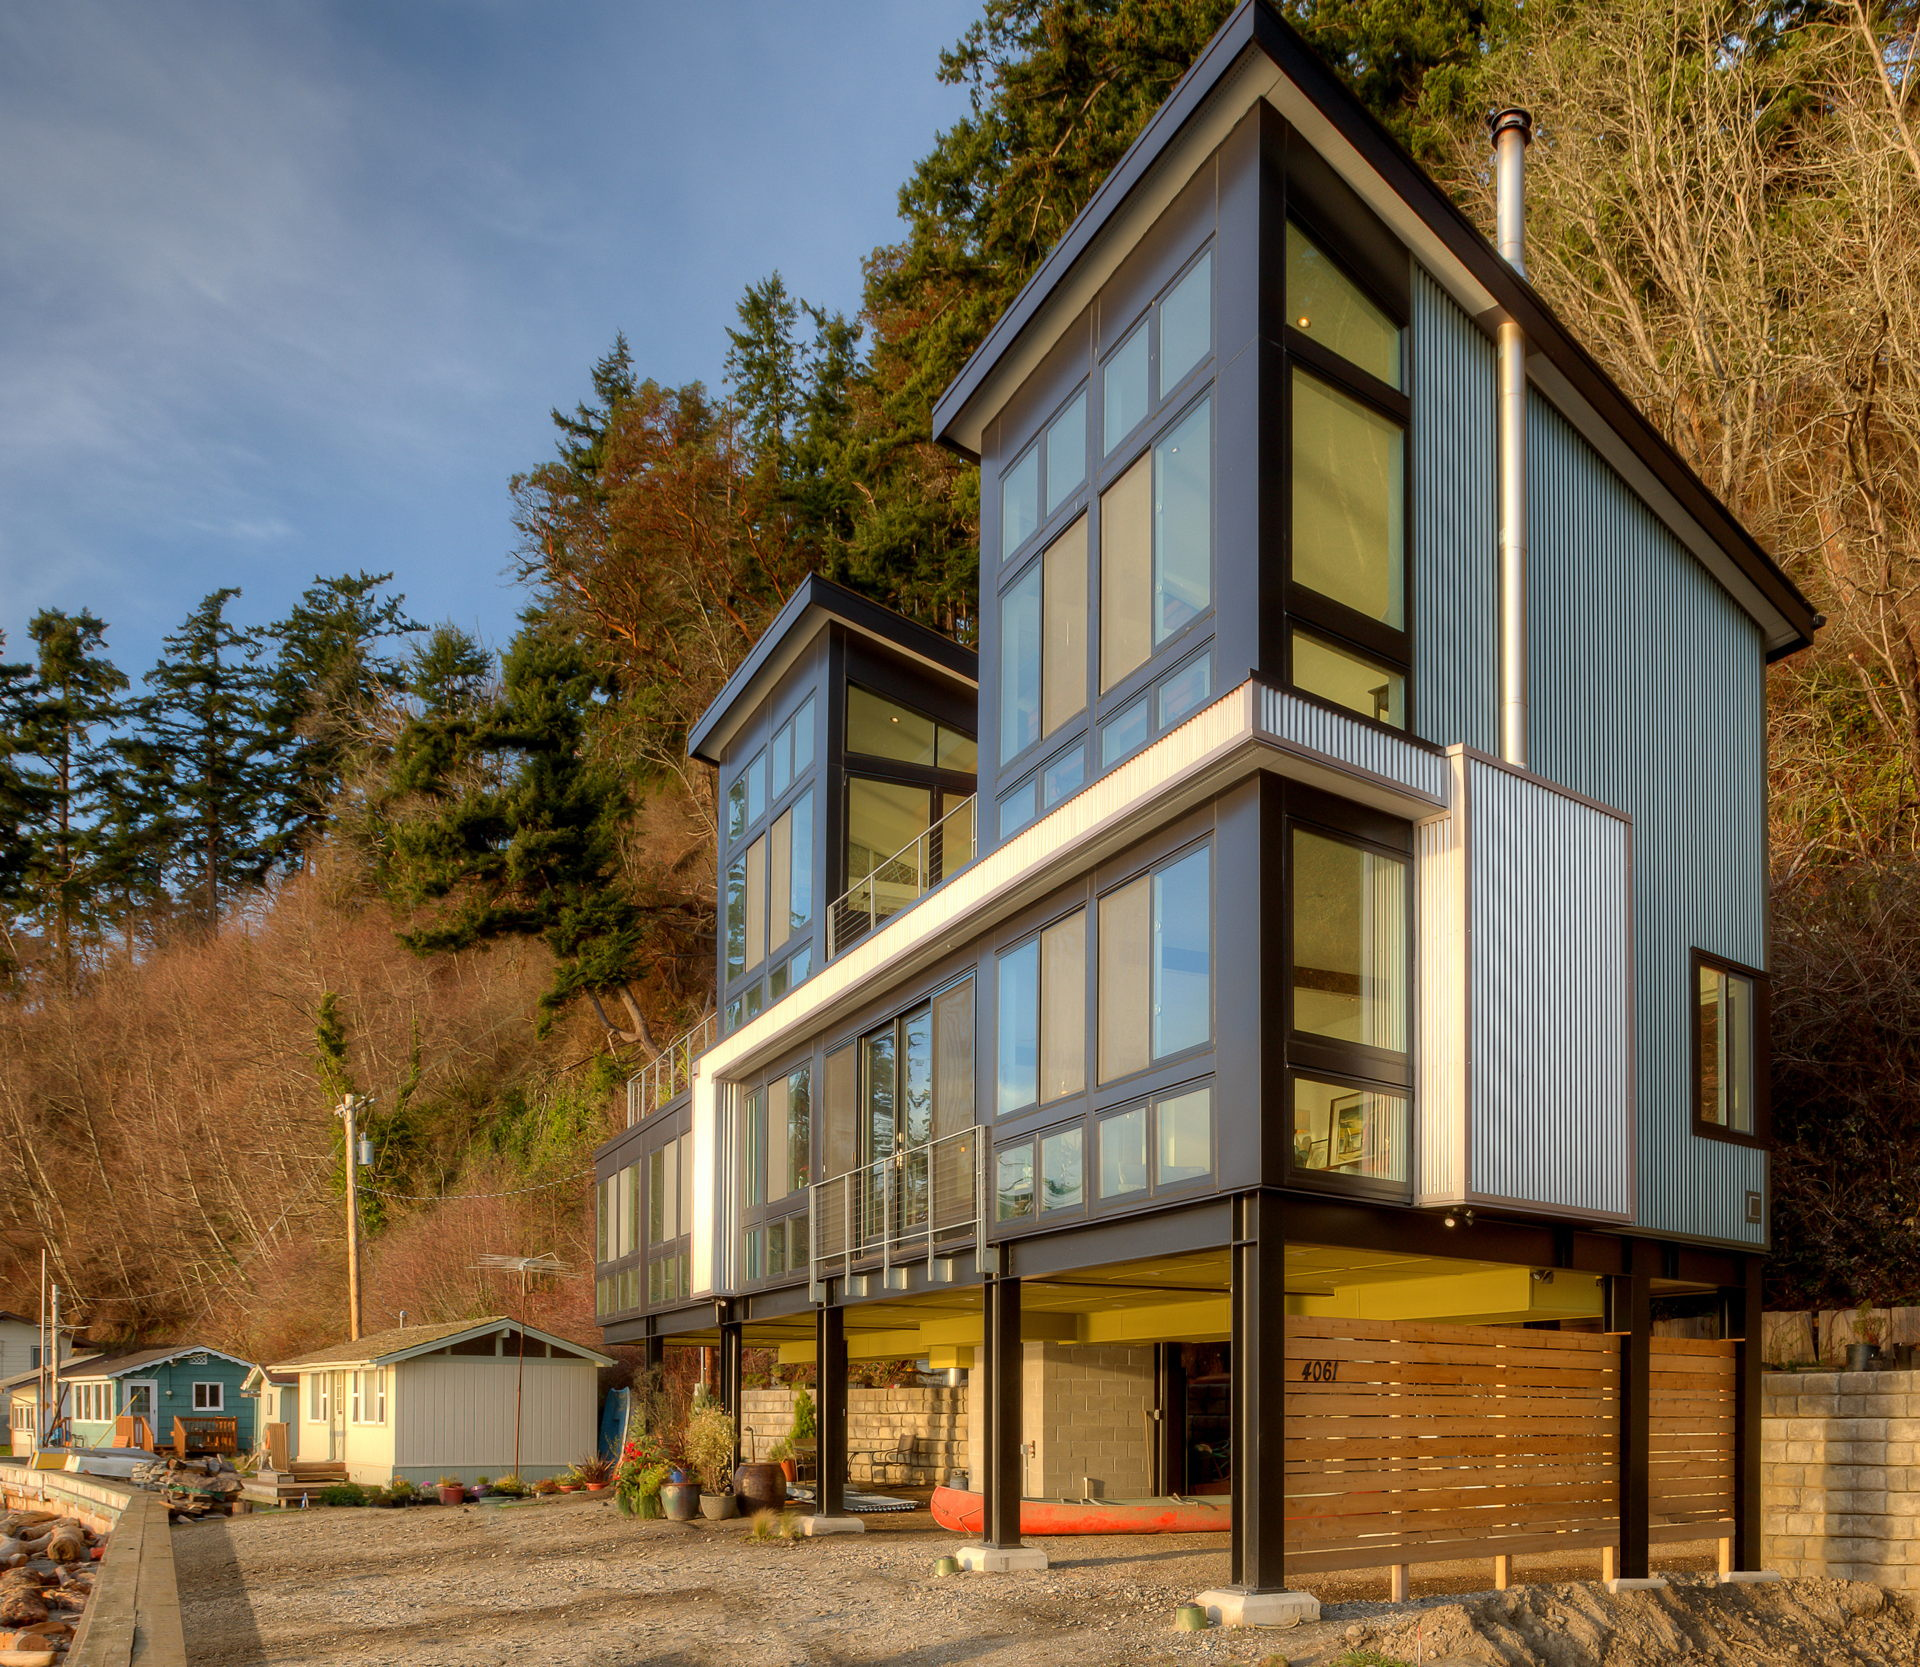 Saratoga Hill House By Designs Northwest Architects Livegreenblog